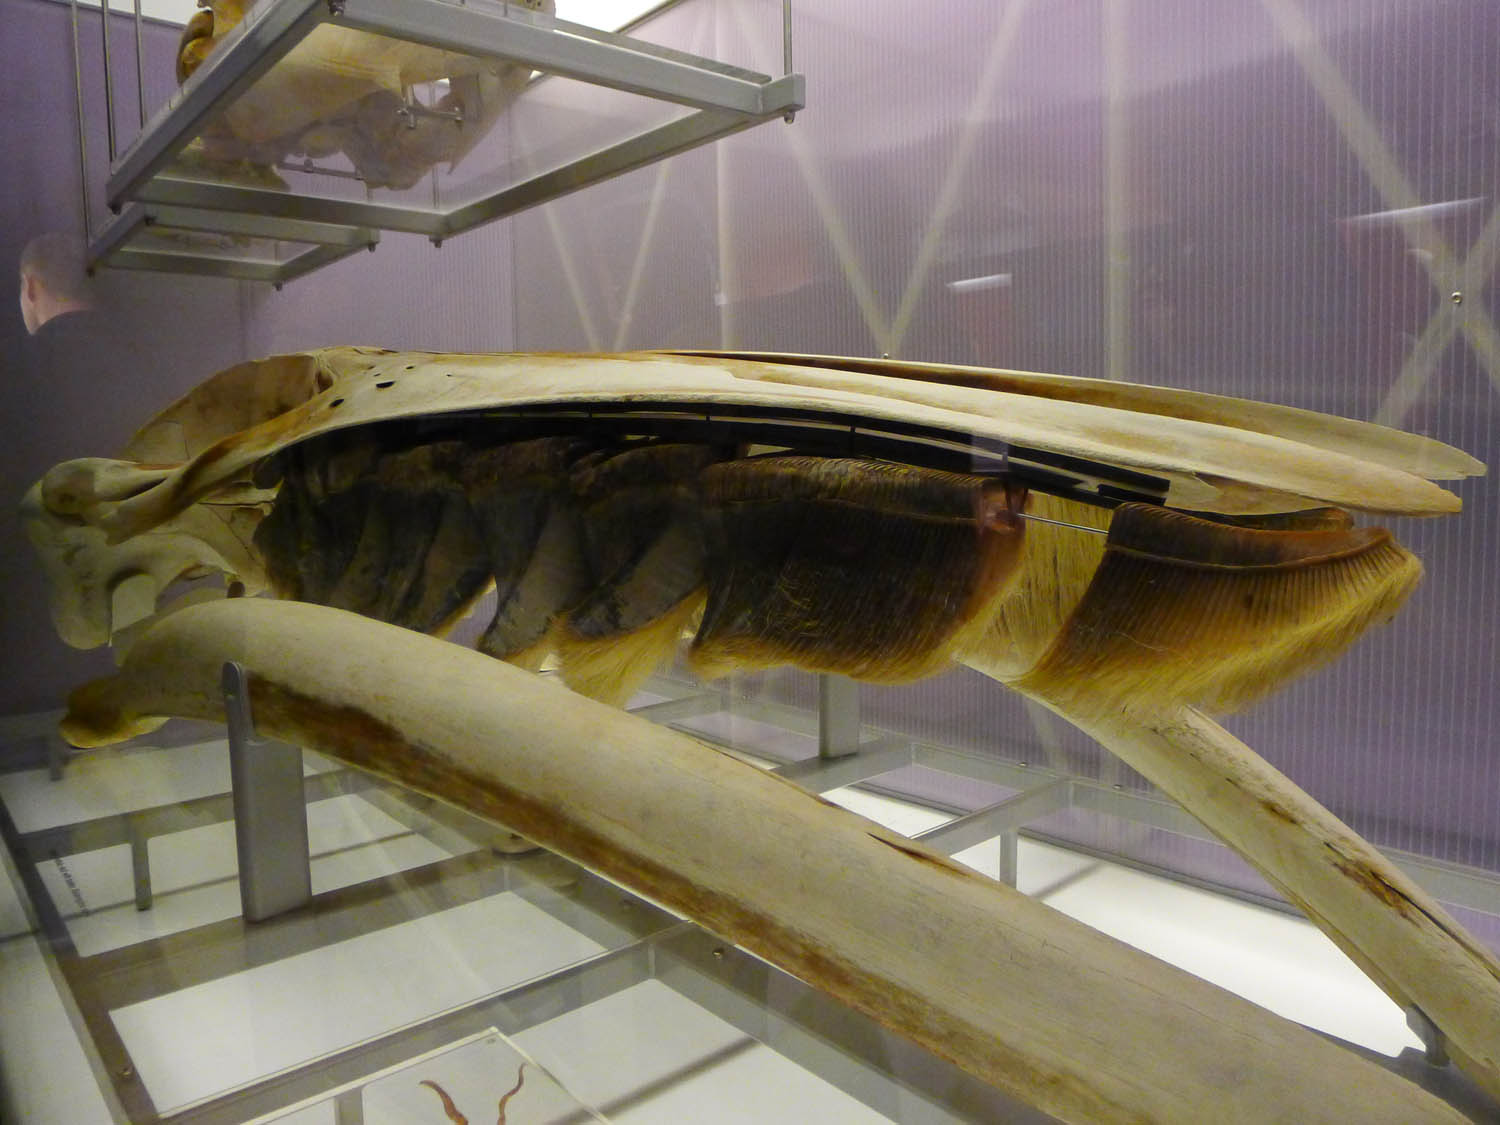 Baleen - the filter-feeder system inside whales' mouths